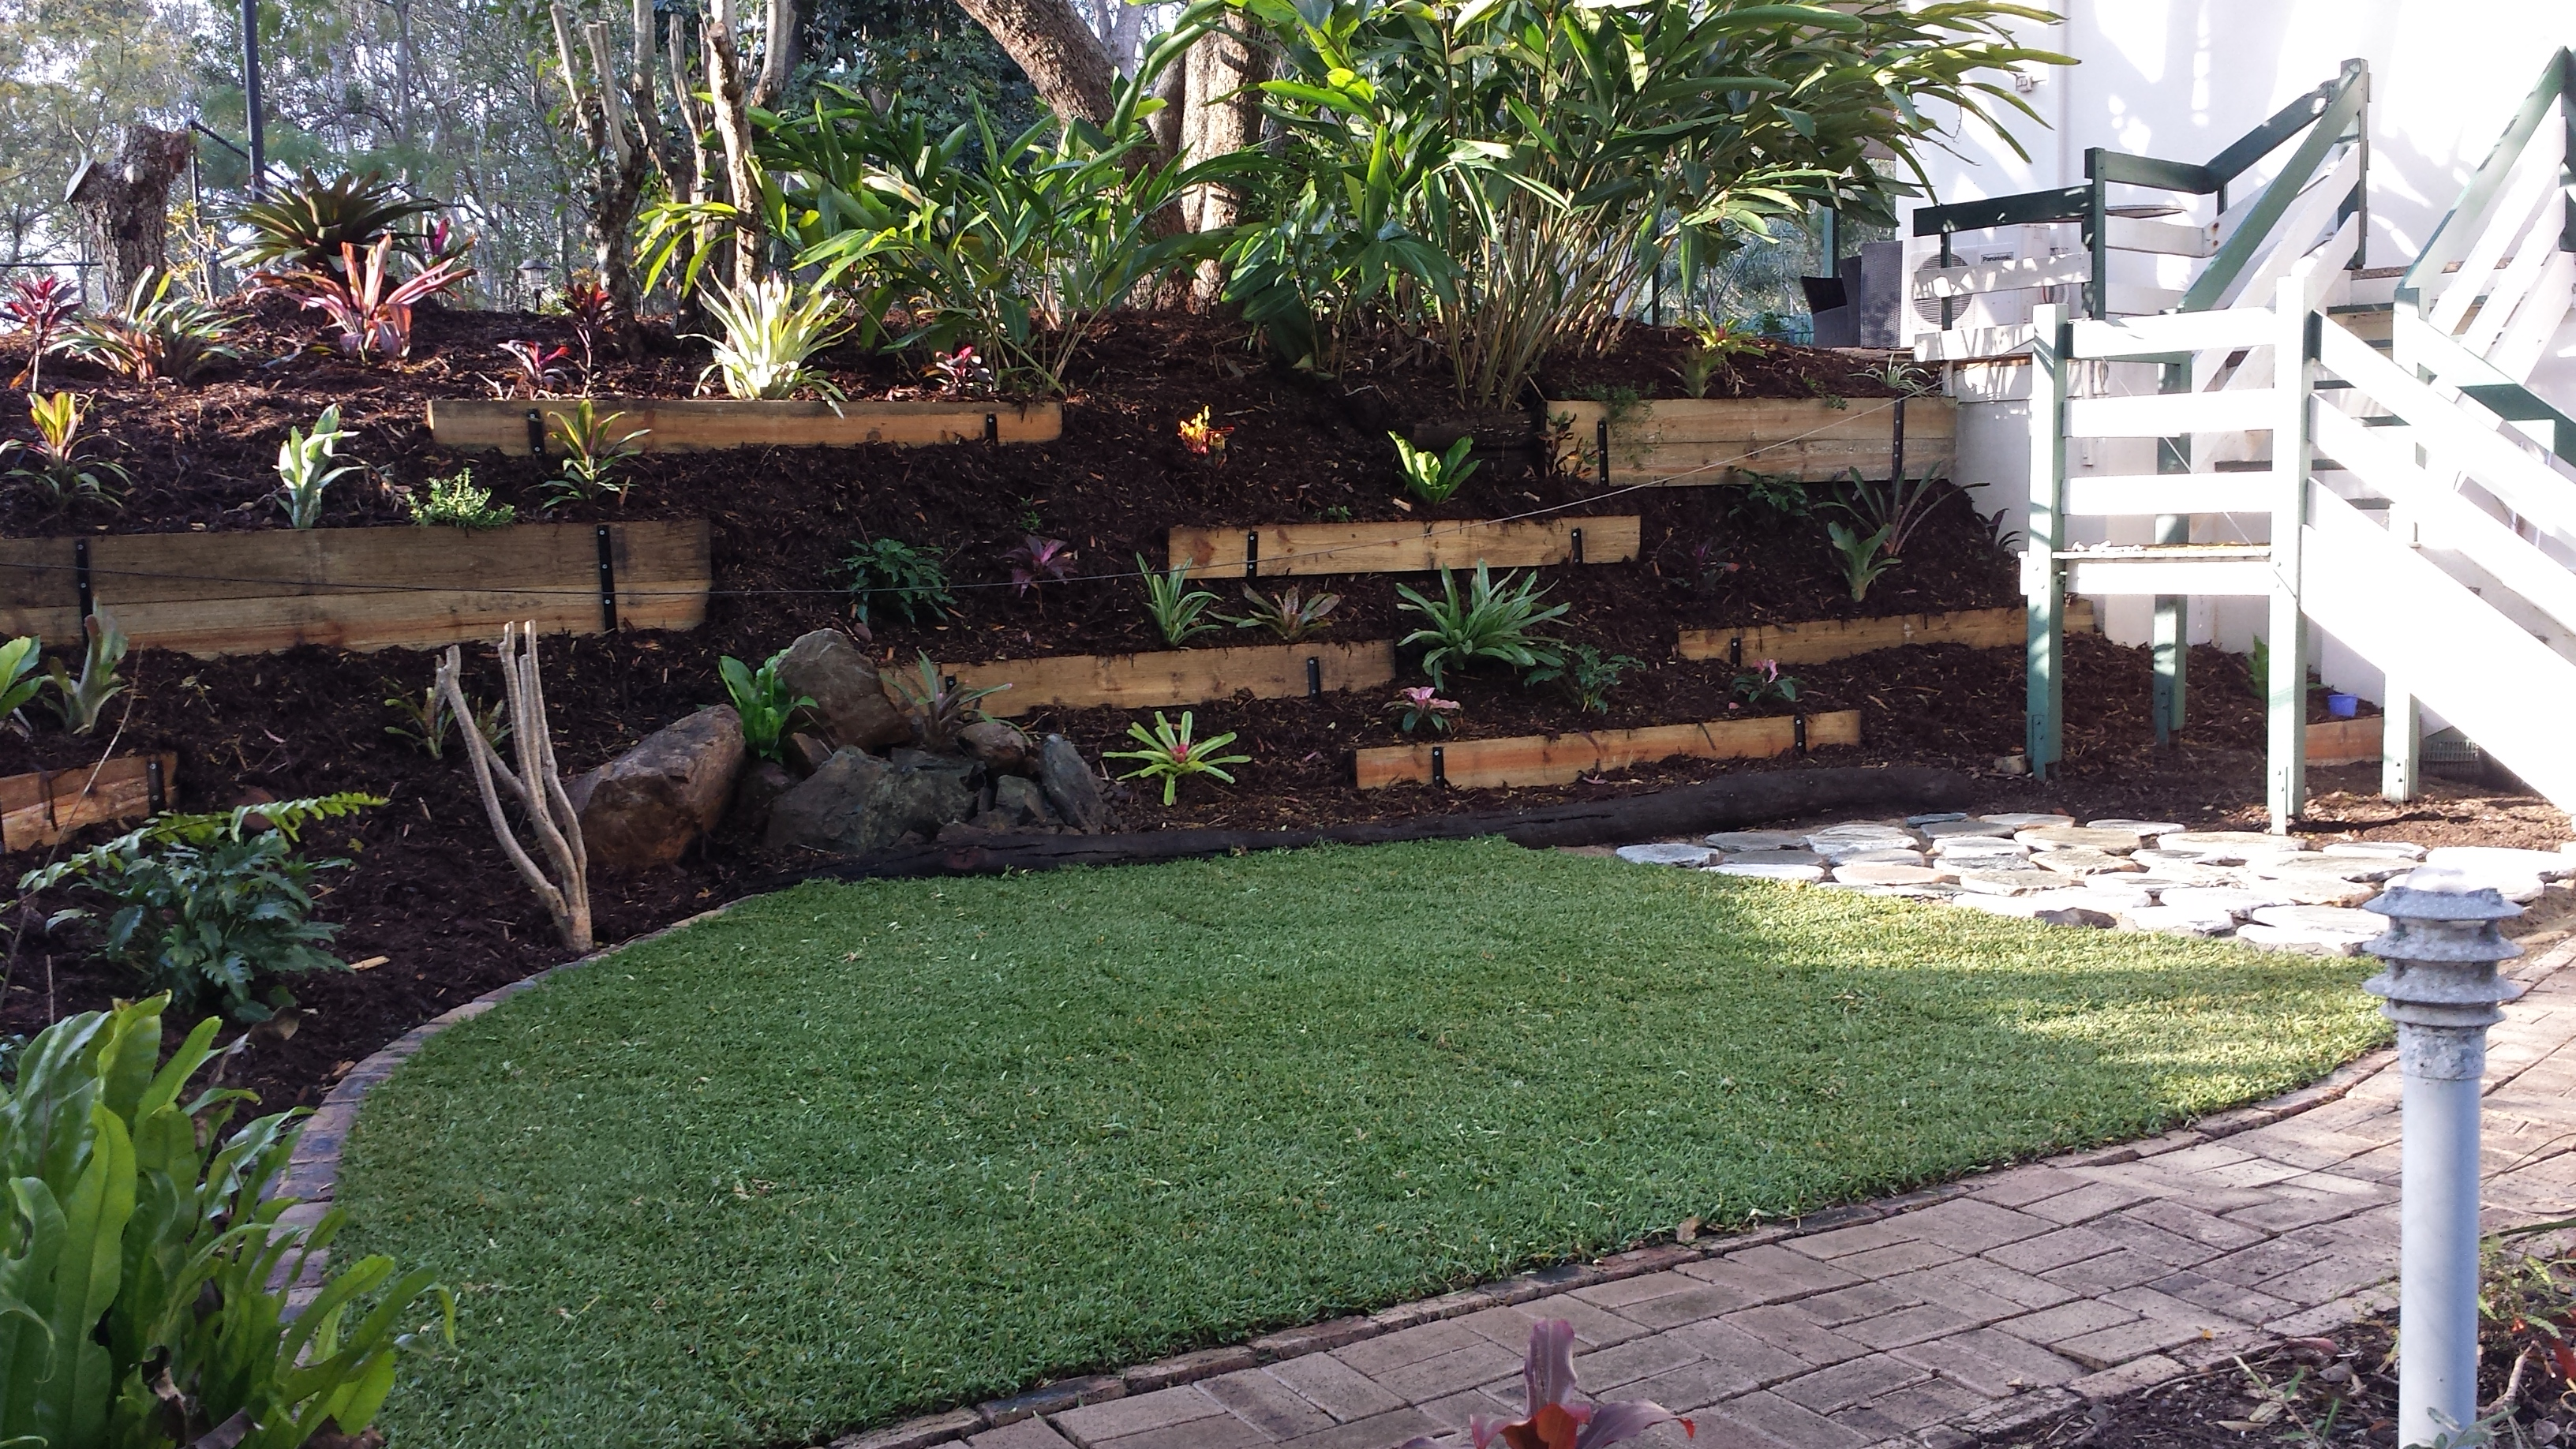 Garden designs garden ideas in brisbane queensland au for Garden designs queensland